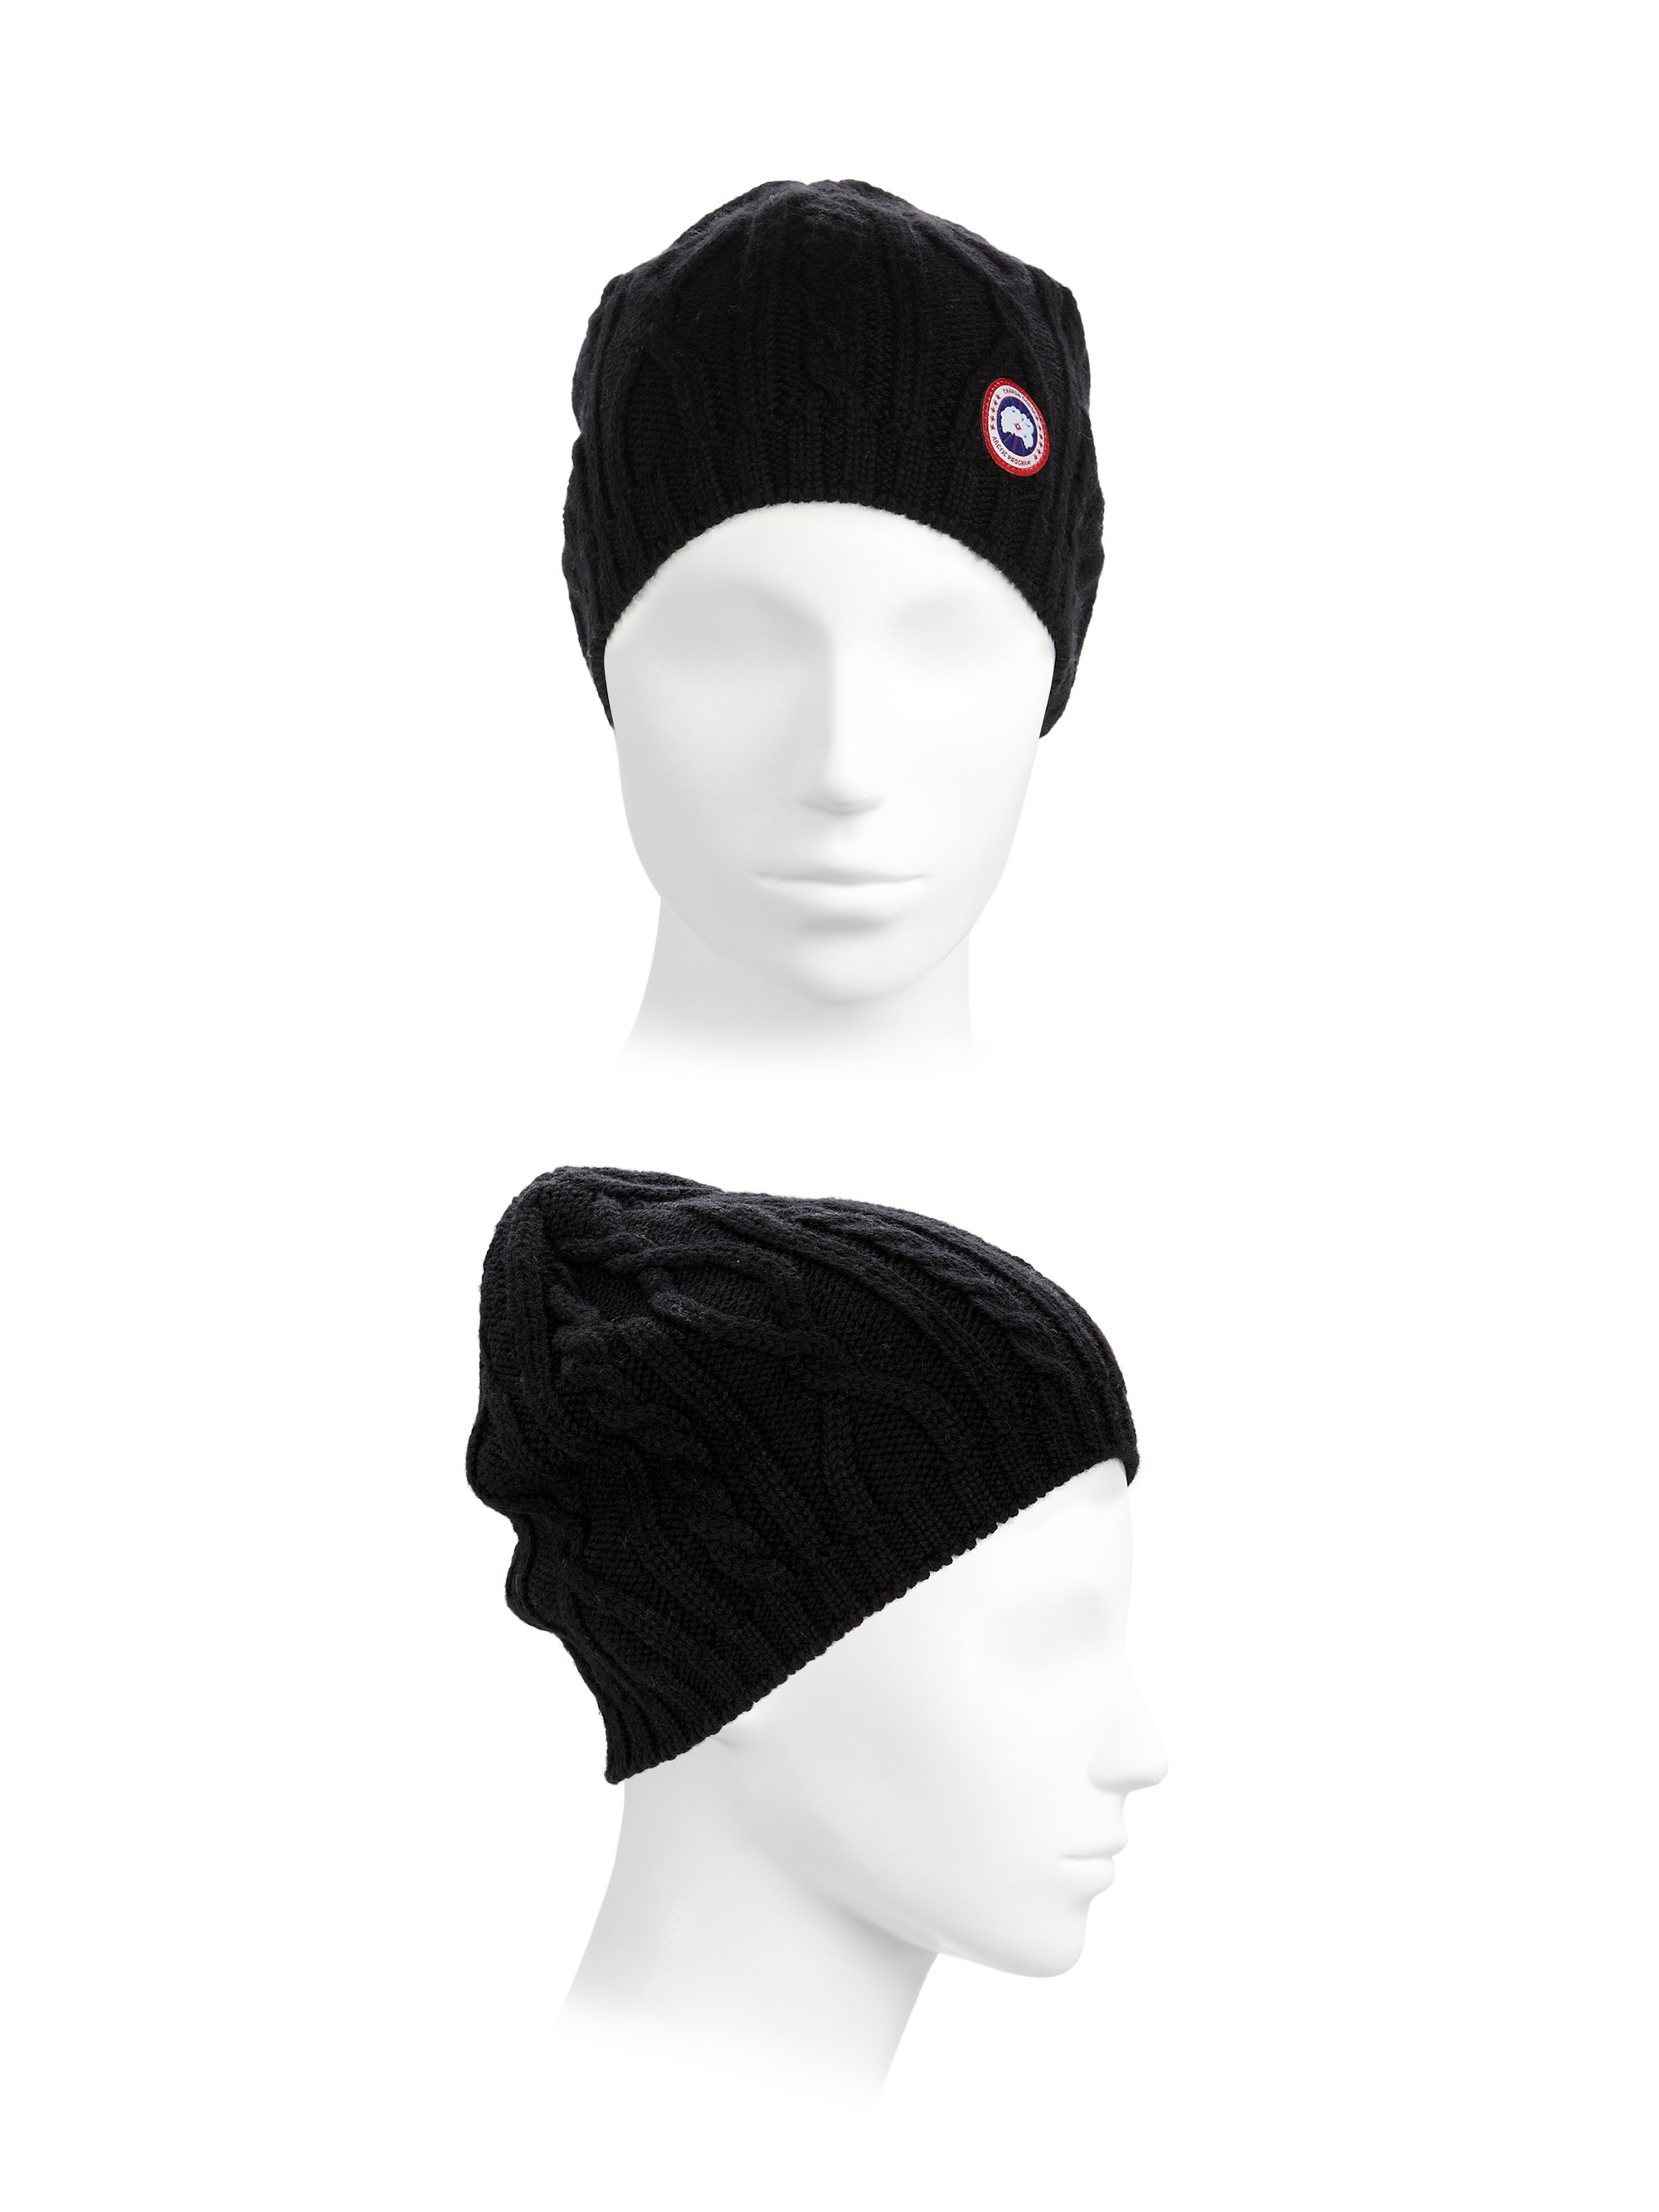 Lyst - Canada Goose Cable-knit Merino Wool Beanie in Black 8cfc940ef90